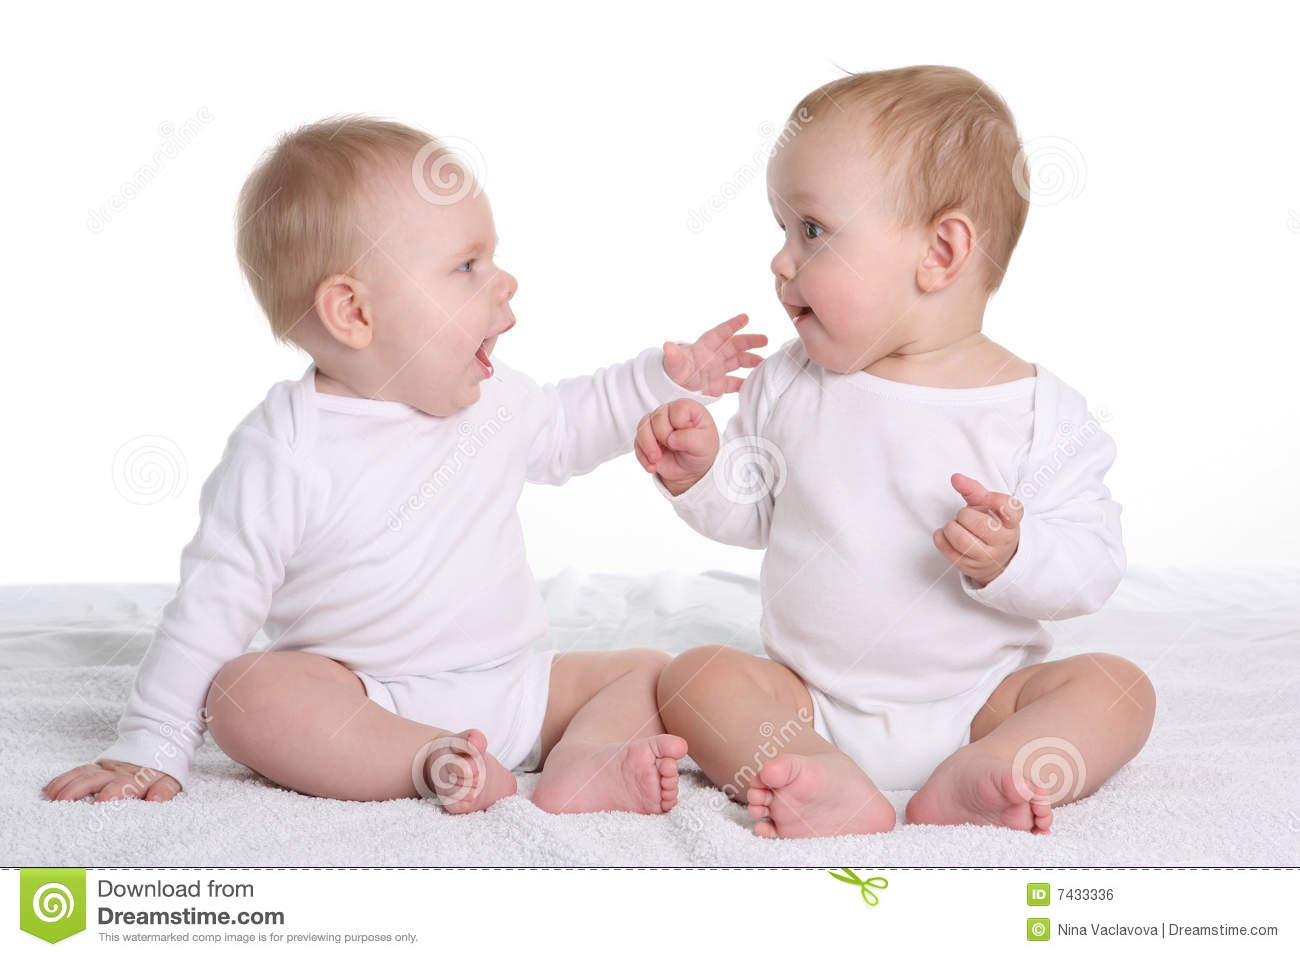 """baby talk """"baby talk signals closeness, is a method of 'mirroring' to evoke positive emotions, and fosters secure attachment with one another,"""" says dr hall."""